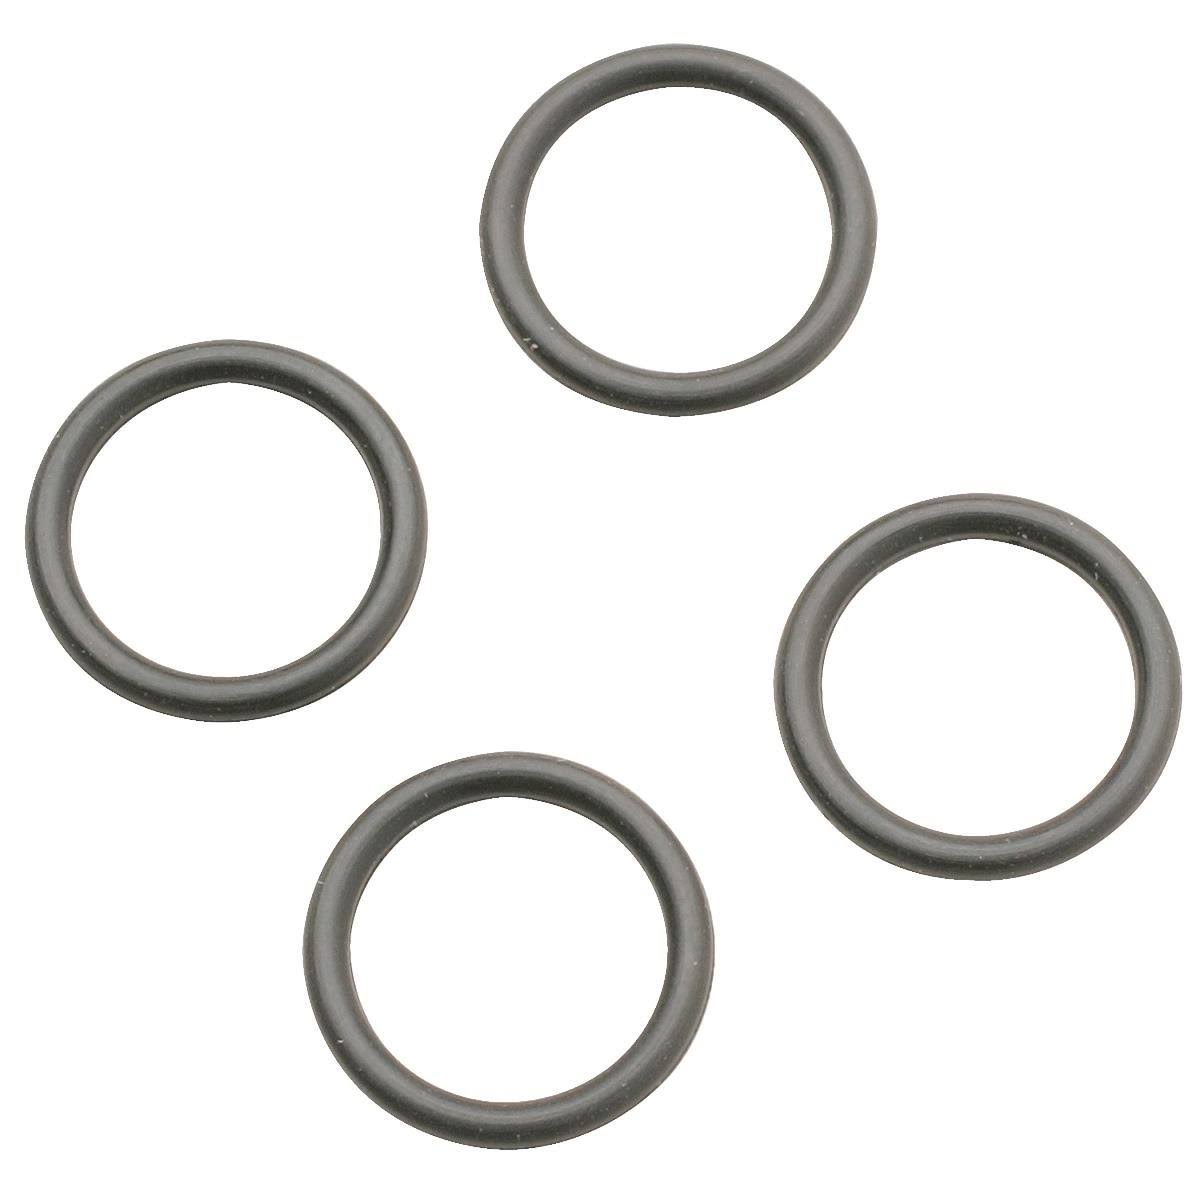 Plumb Pak Do it O Ring Plumbing Seals - Black, 1/2""